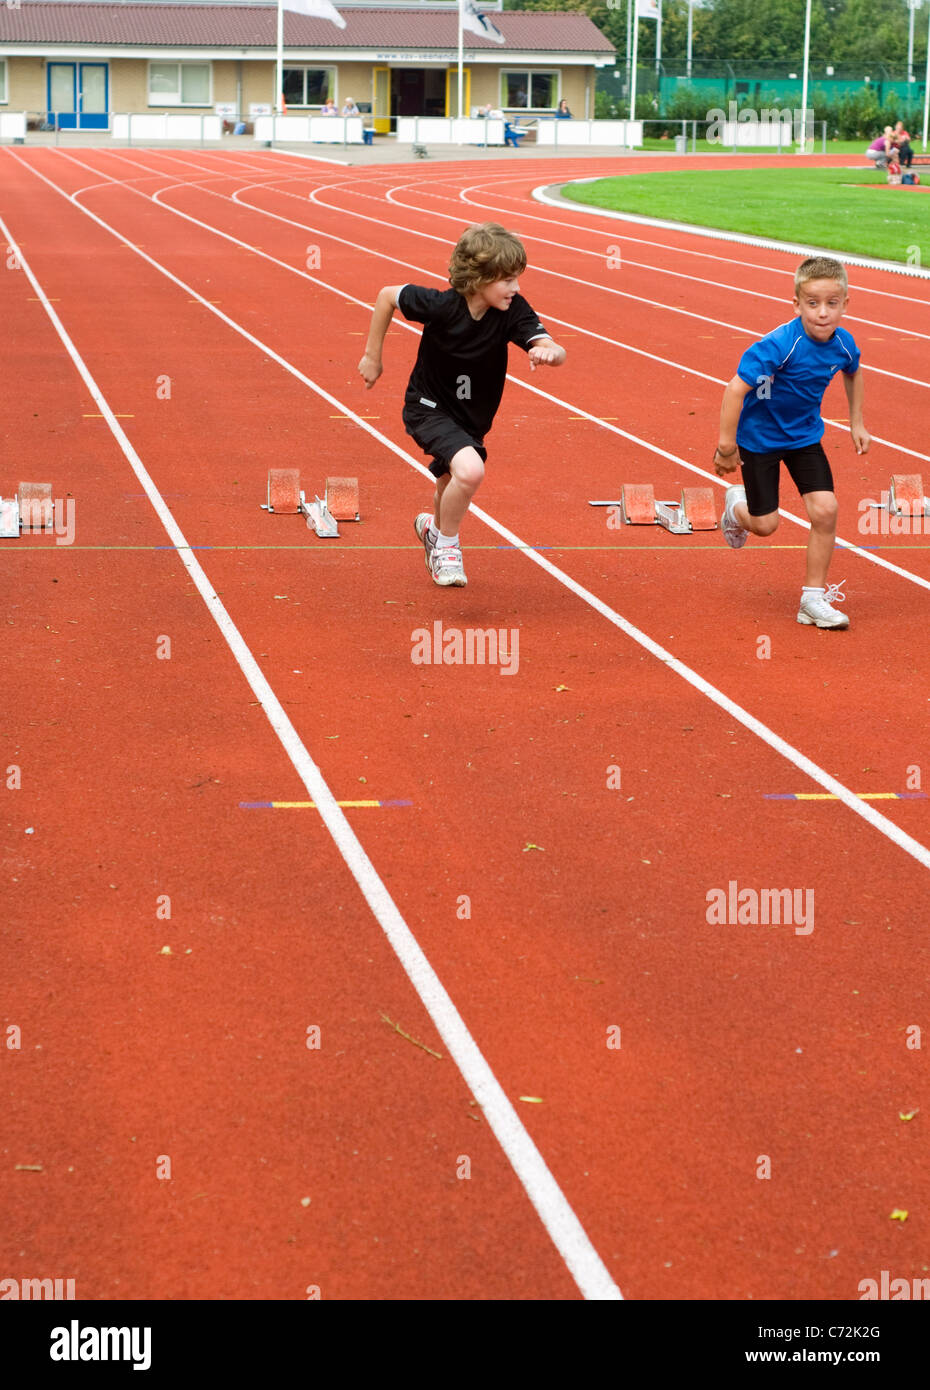 Two young boys taking part in a sprint race on an outdoor athletics track - Stock Image